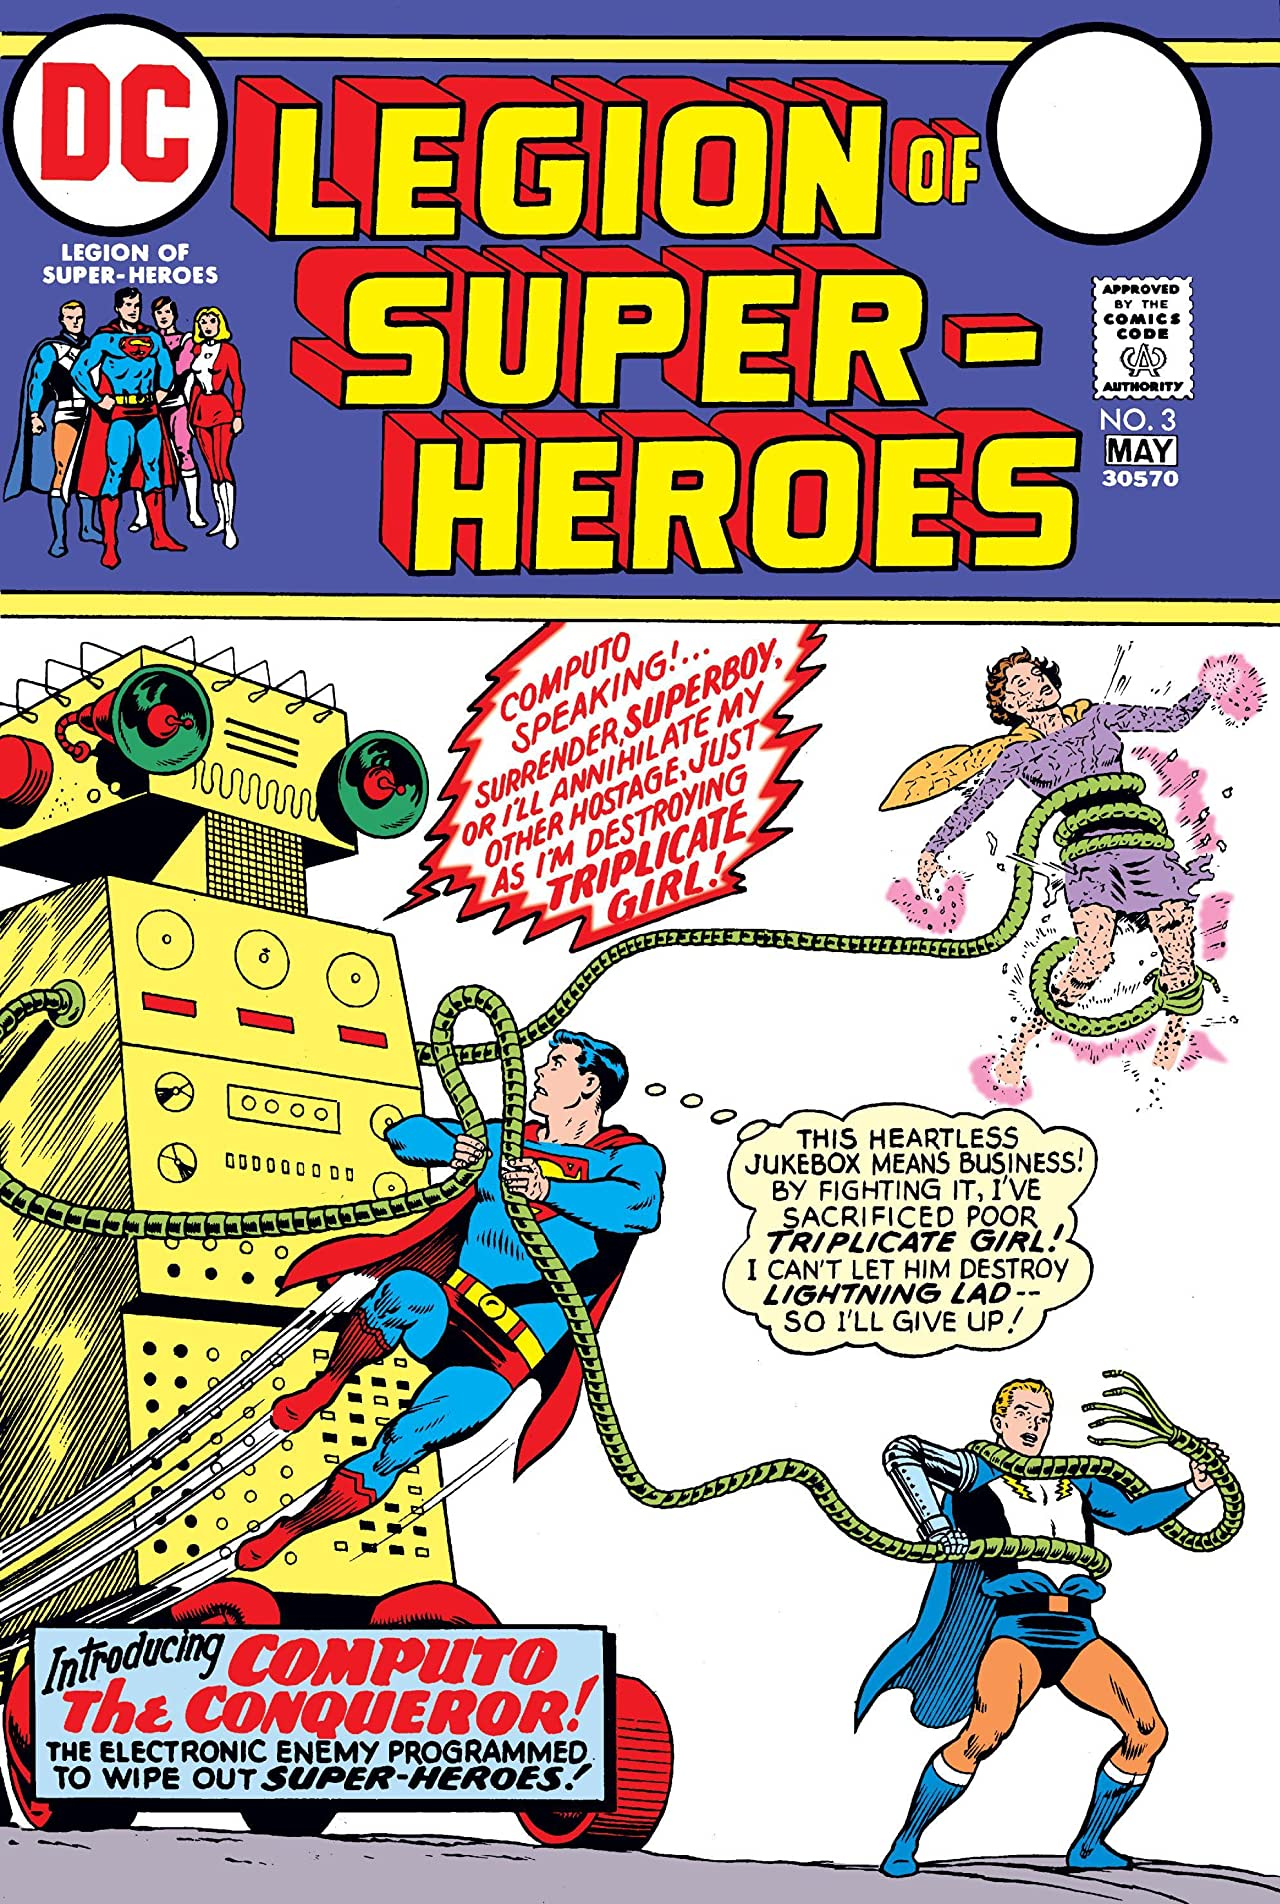 Legion of Super-Heroes (1973) #3